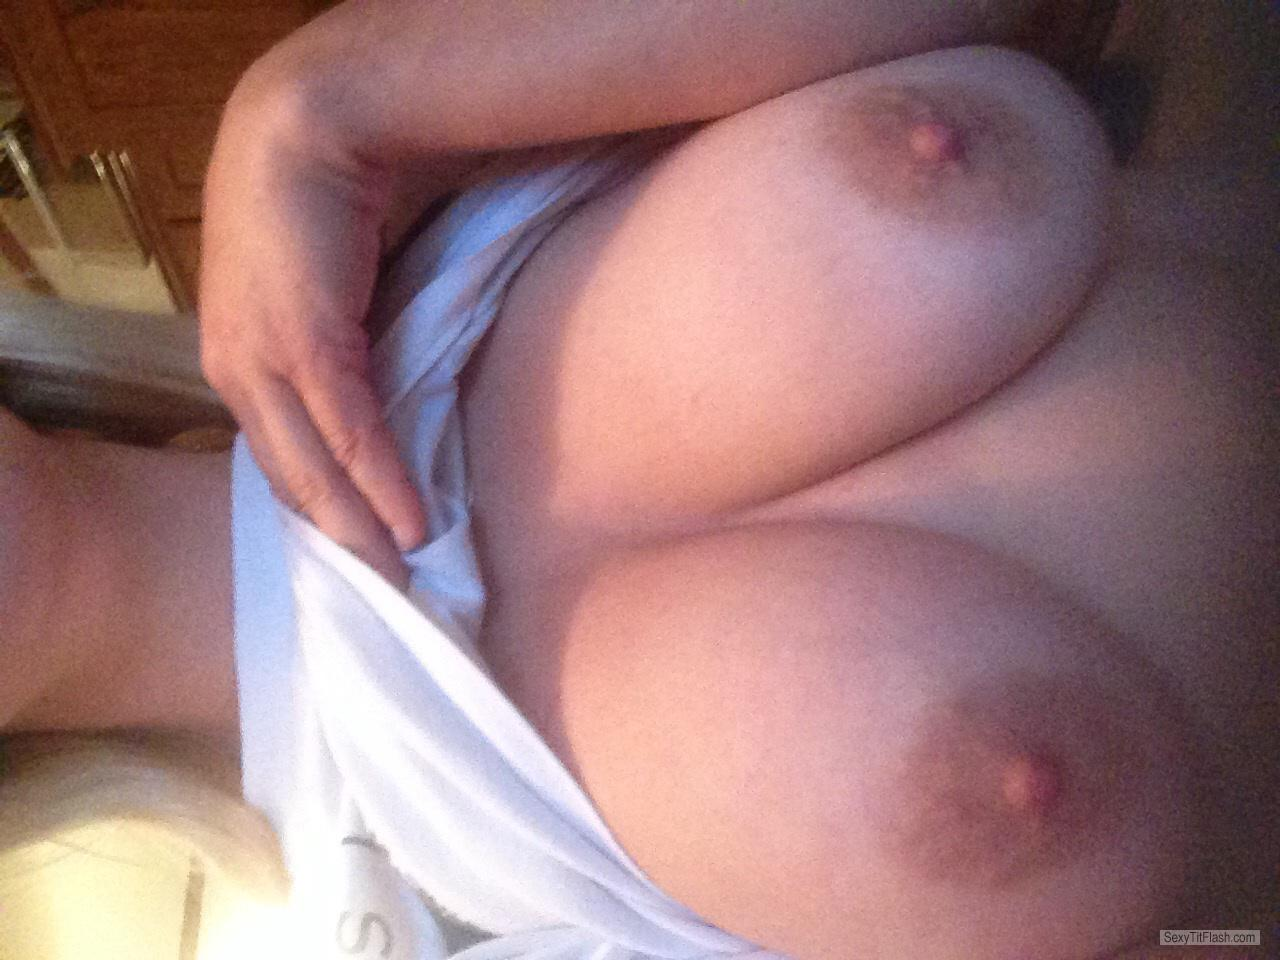 Tit Flash: My Big Tits (Selfie) - Oh from United States